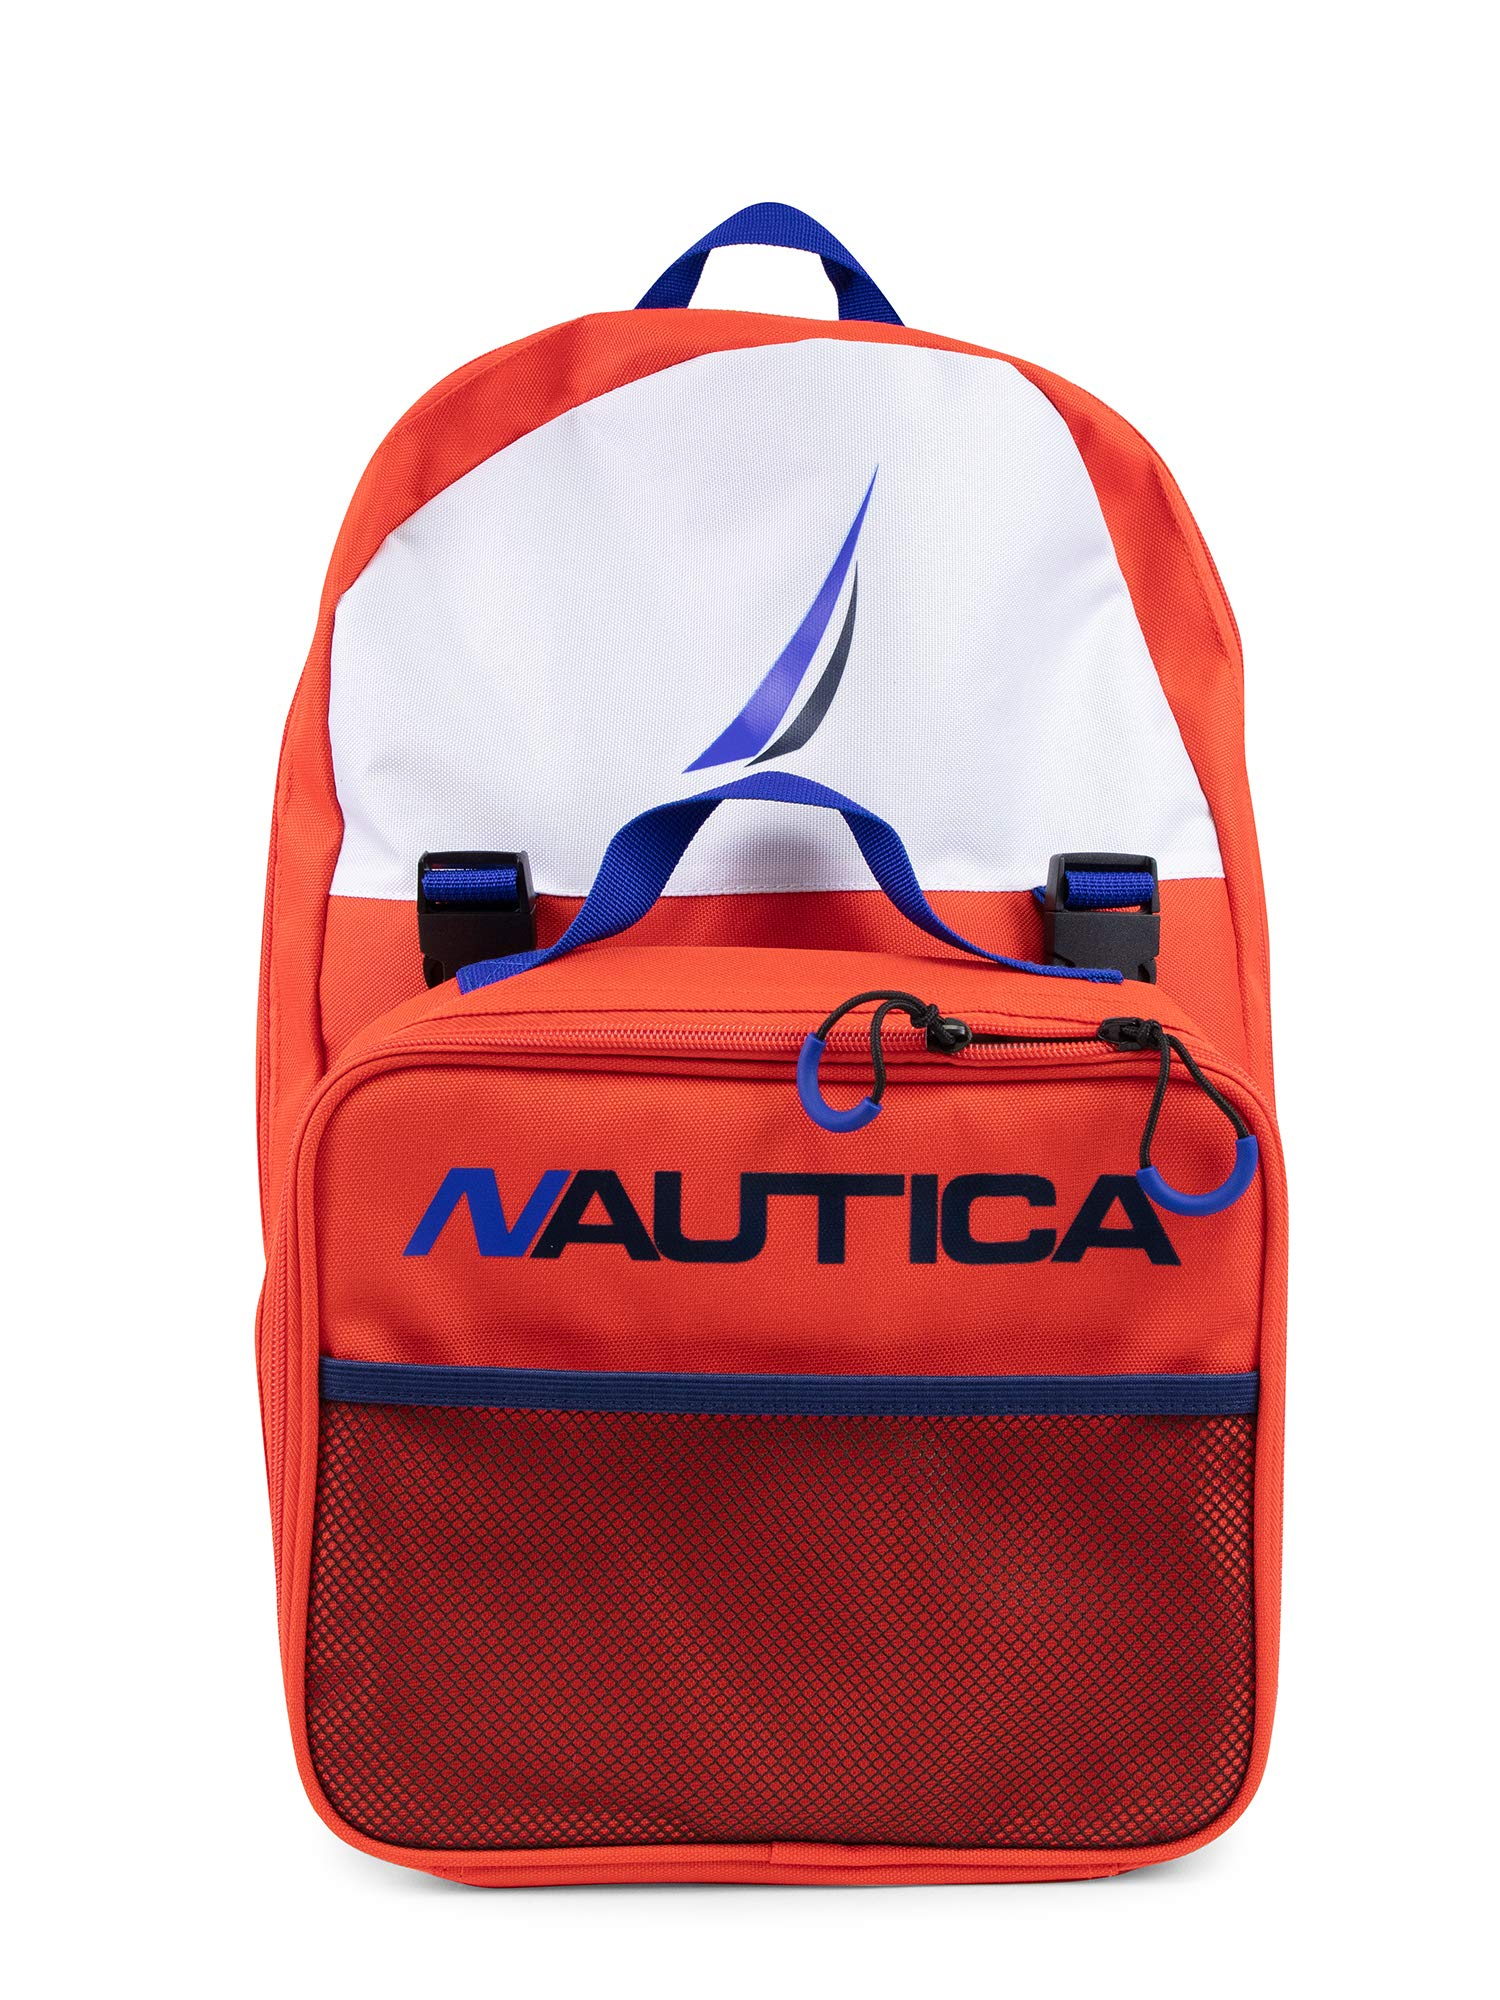 Nautica Backpack Lunch Combo Orange